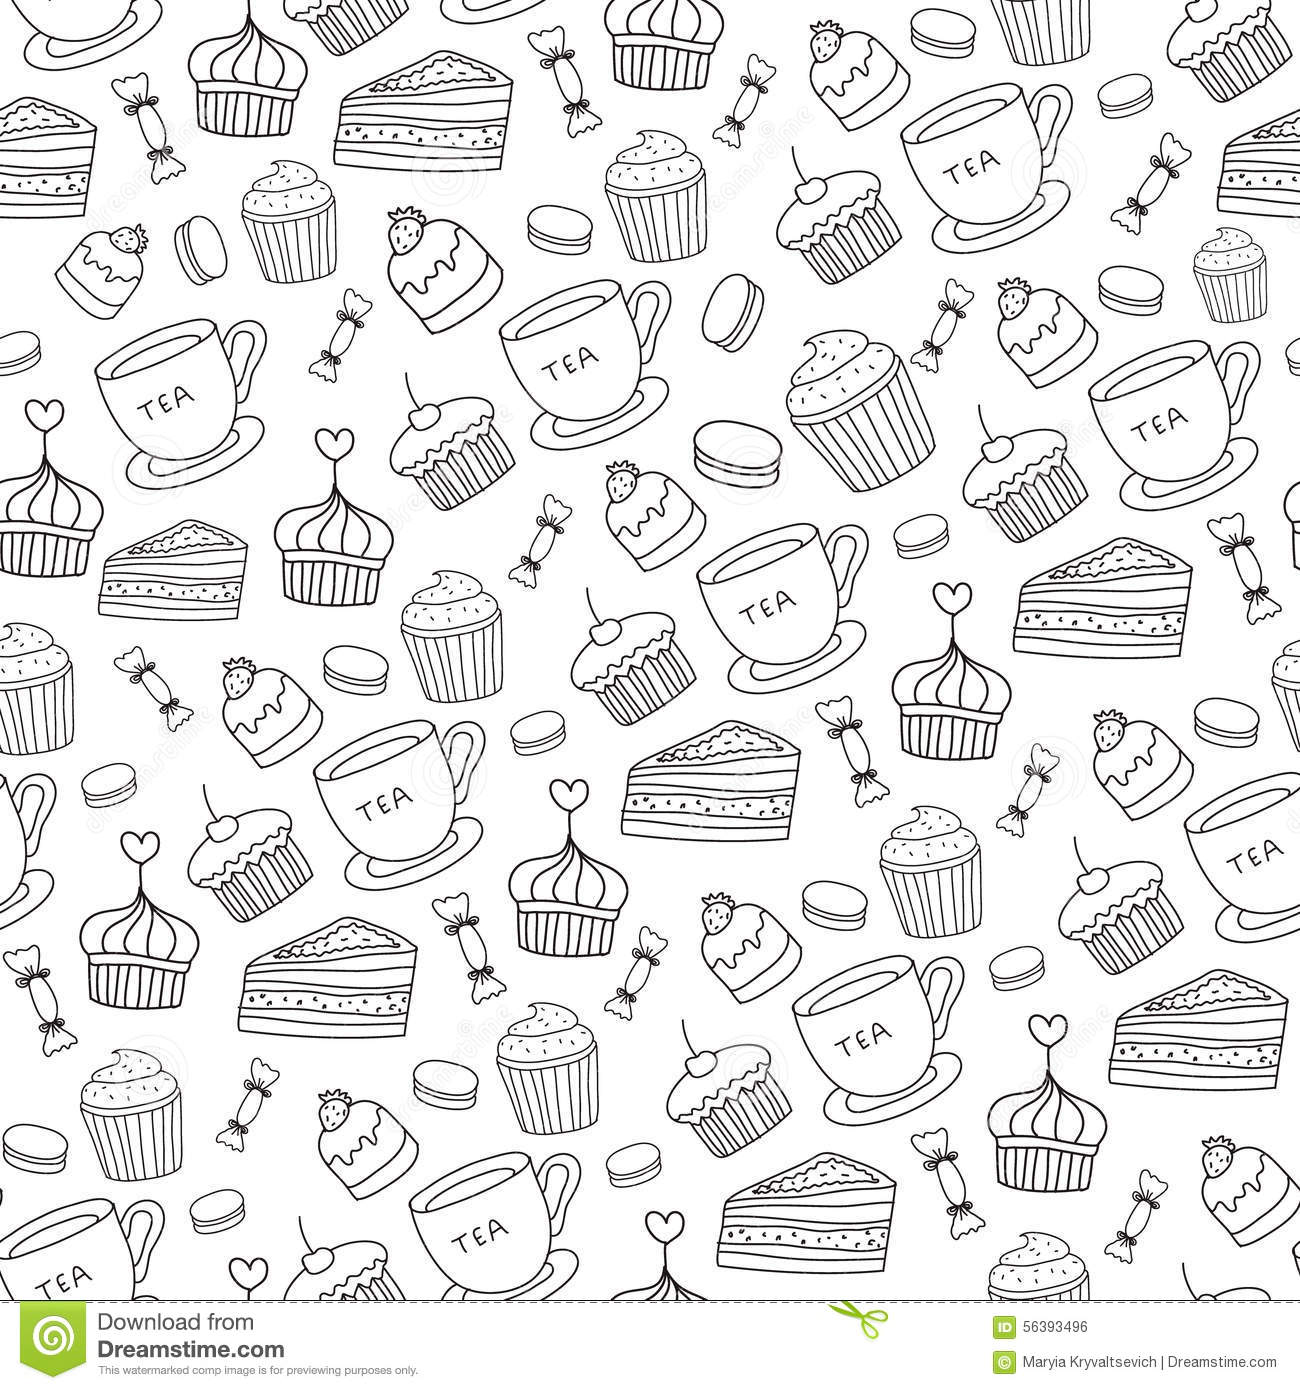 Doodle Vector Bakery Cakes And Dessert Tea Stock Vector